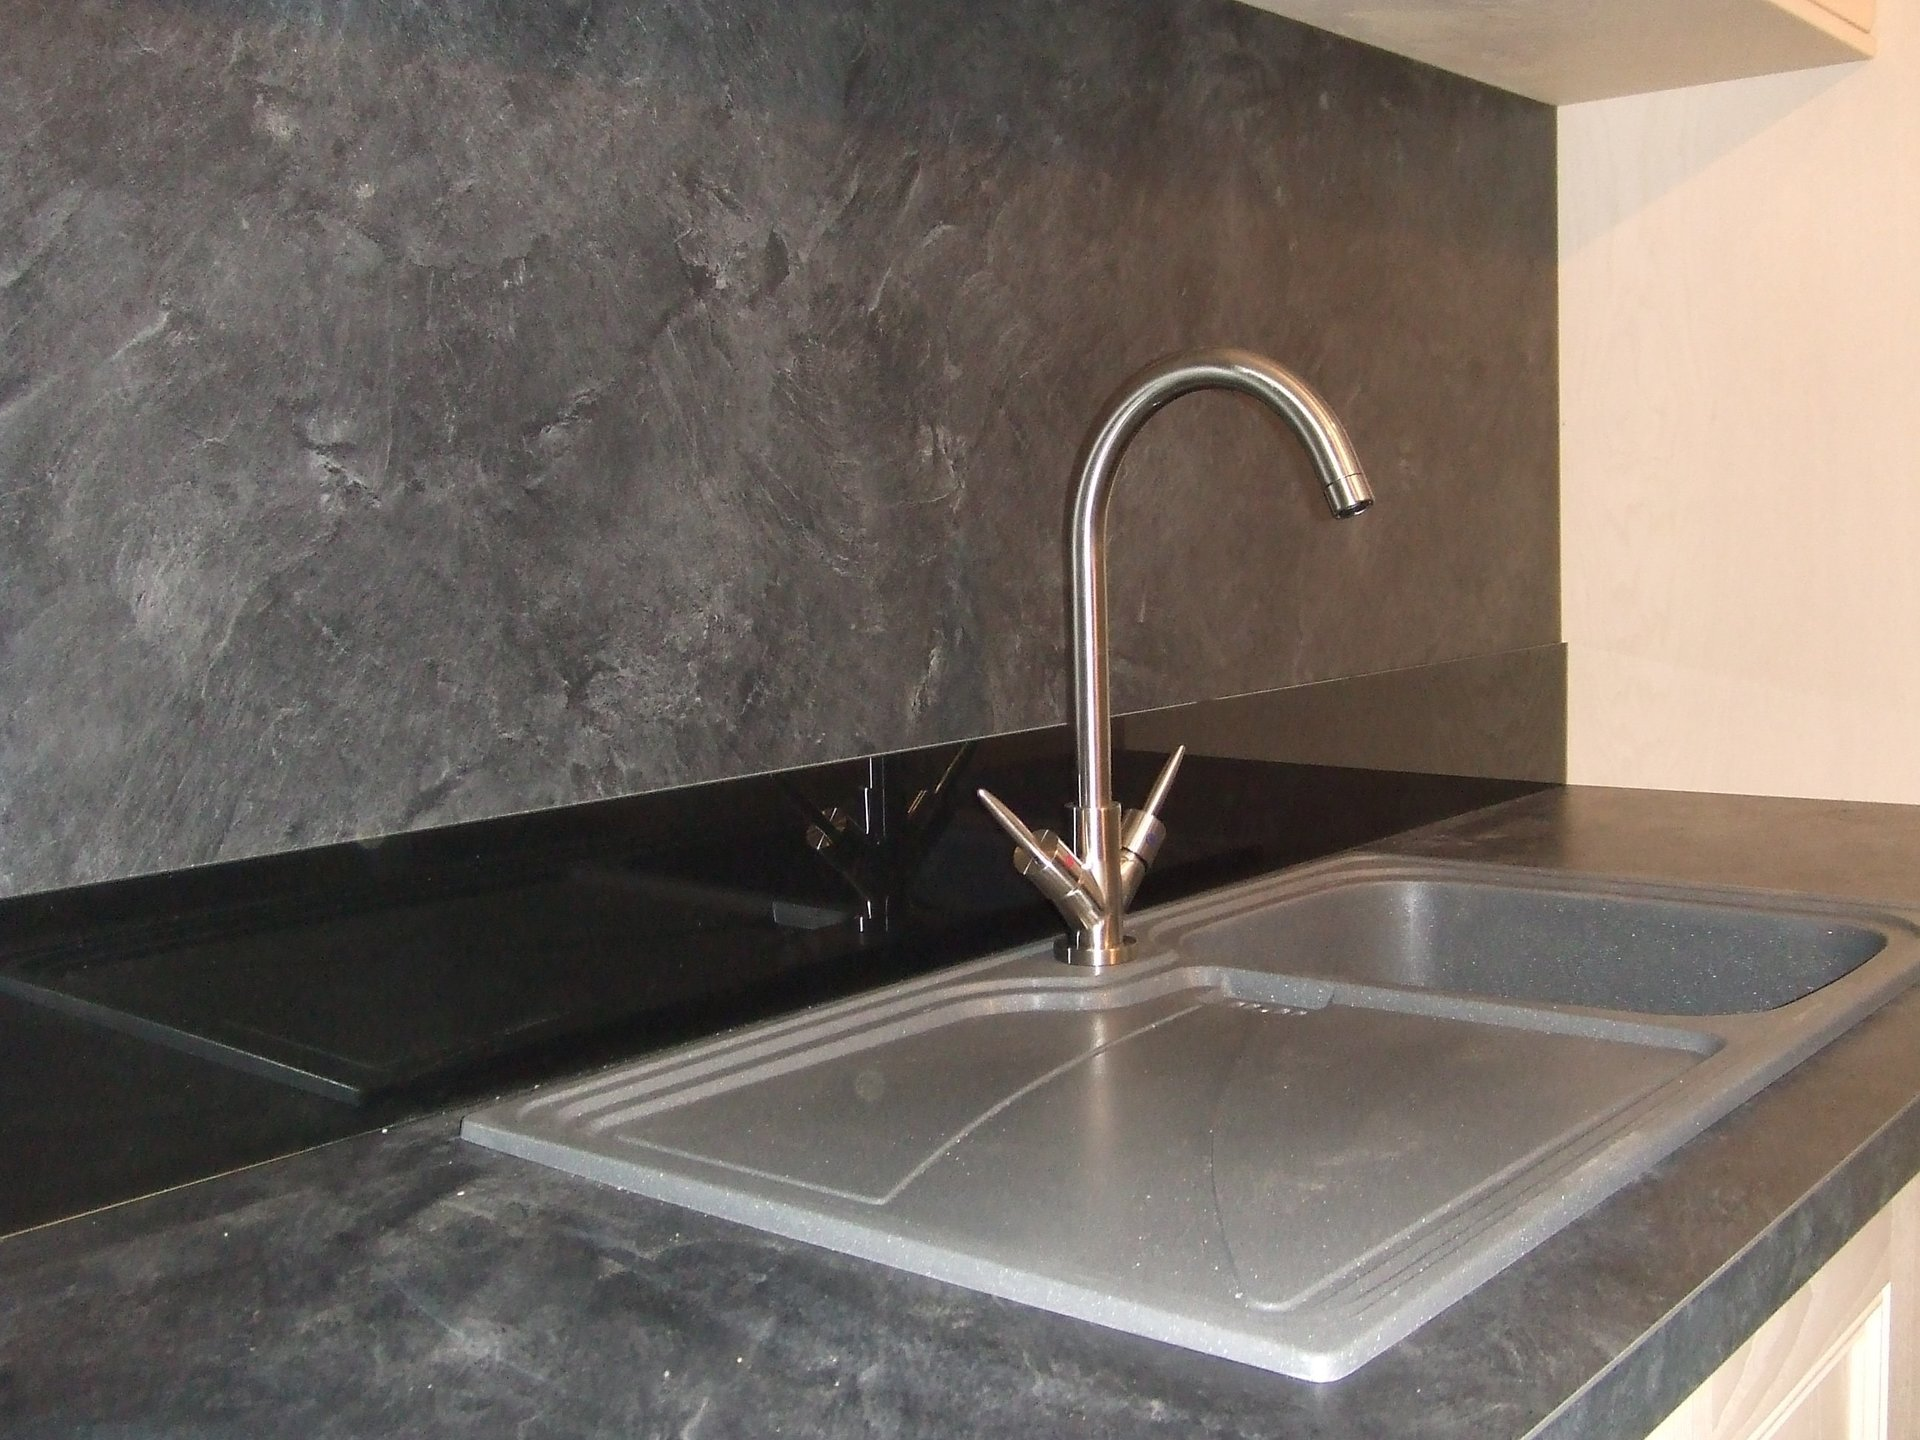 sink with tap